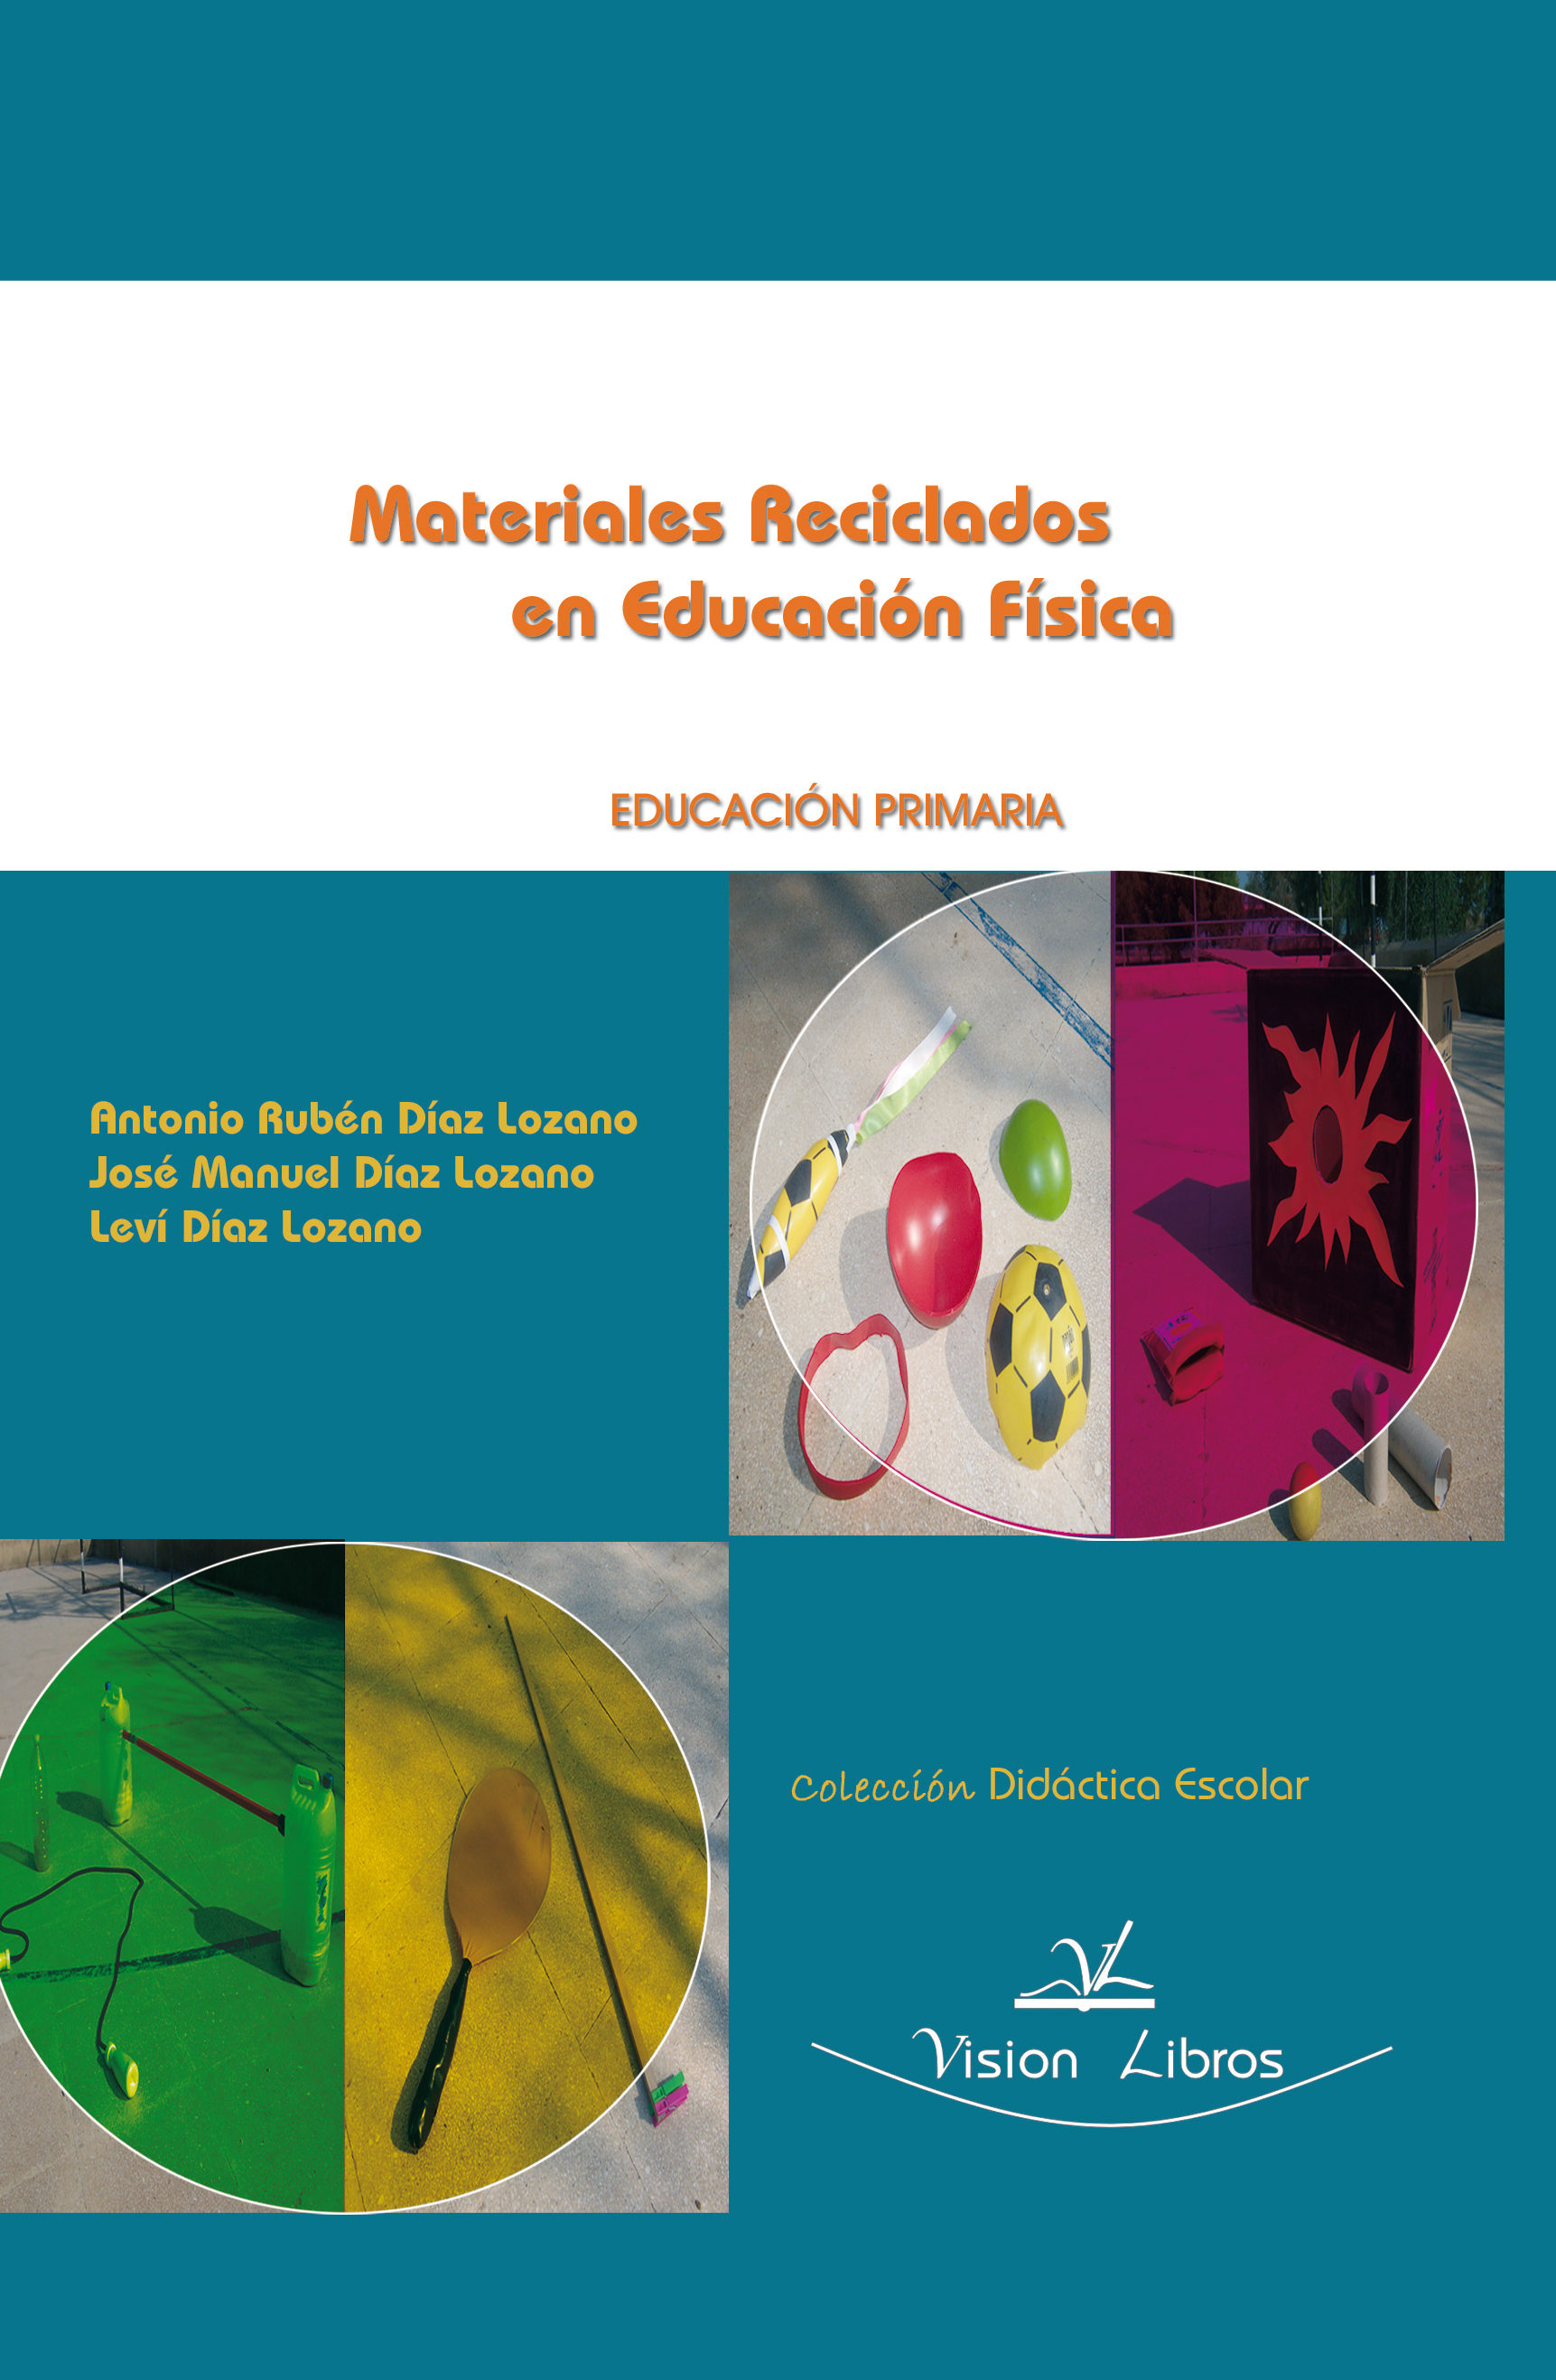 Materiales Reciclados En Educacion Fisica Educacion Primaria Ebook